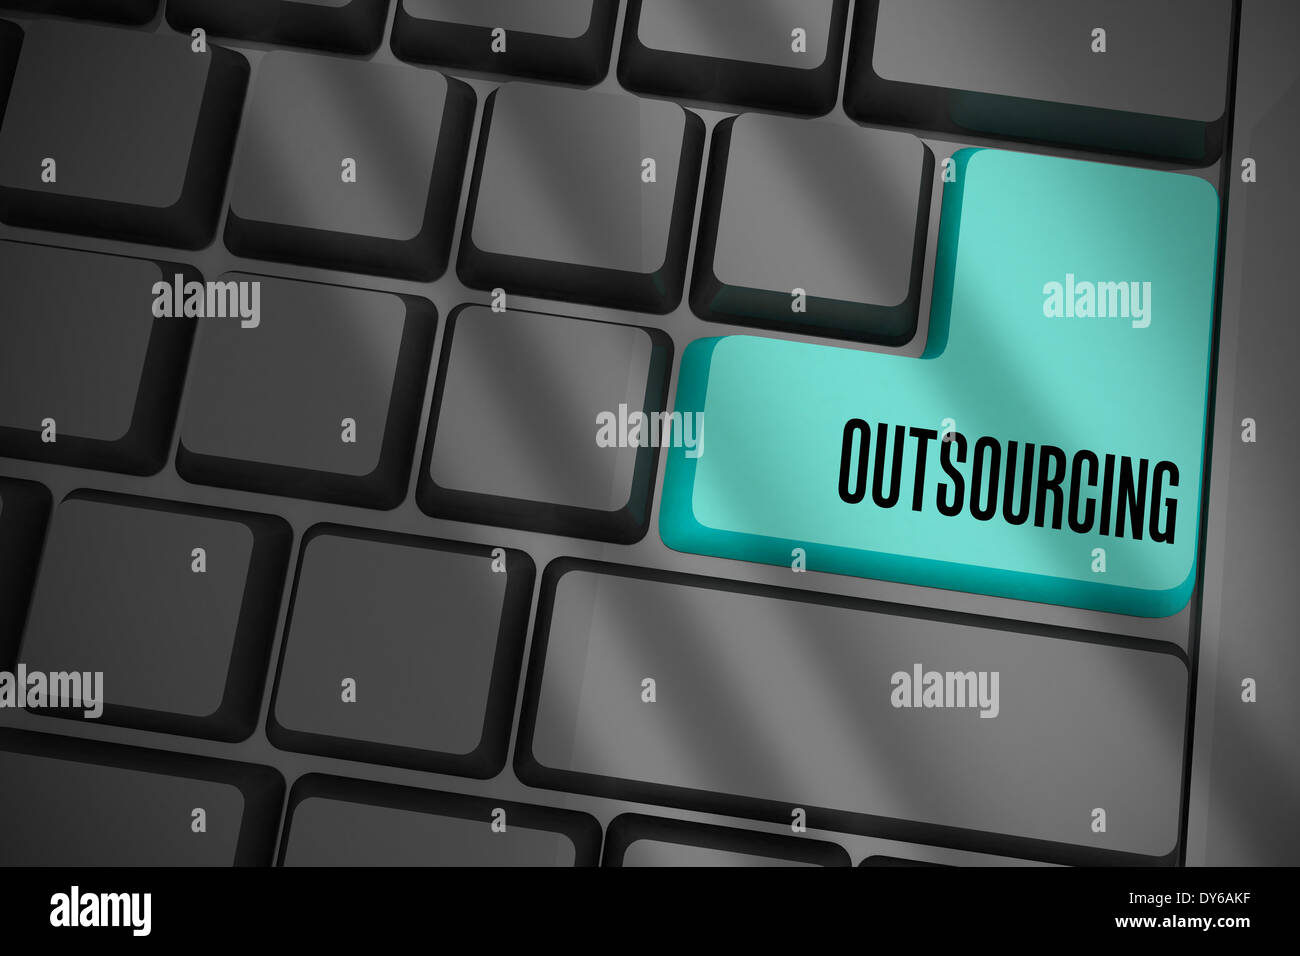 Outsourcing on black keyboard with blue key - Stock Image